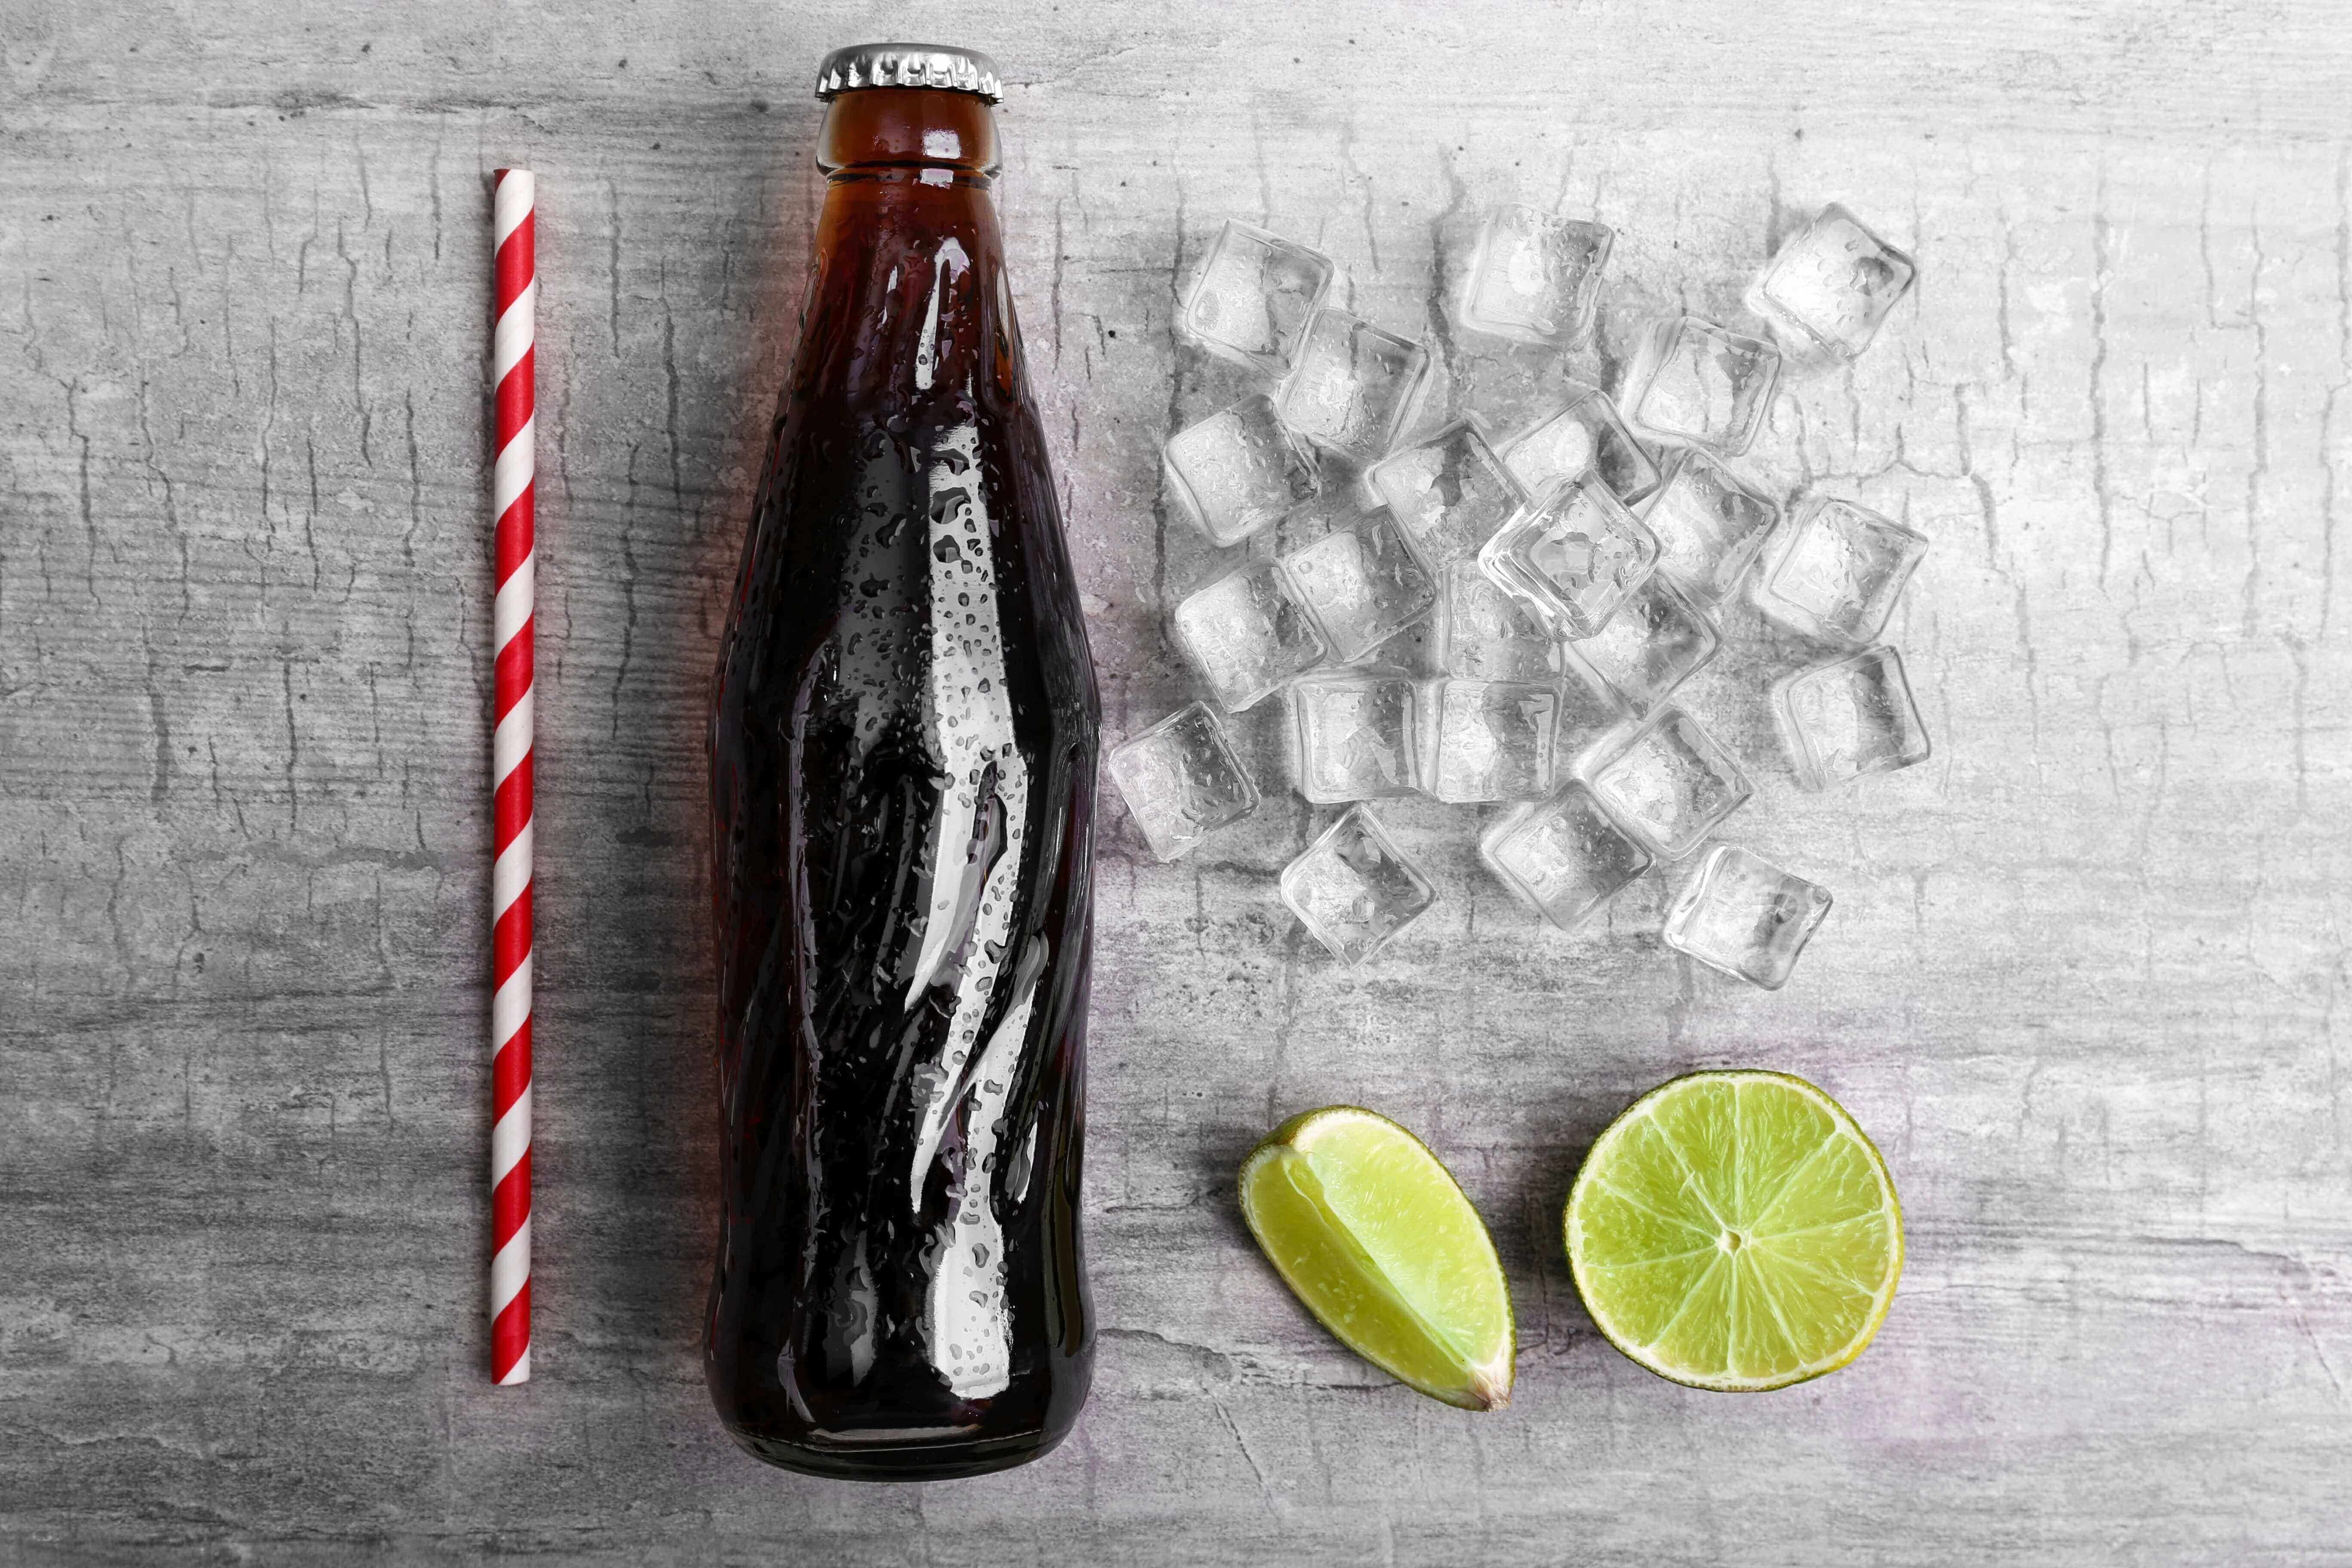 Plain cola bottle, ice, lime and straw